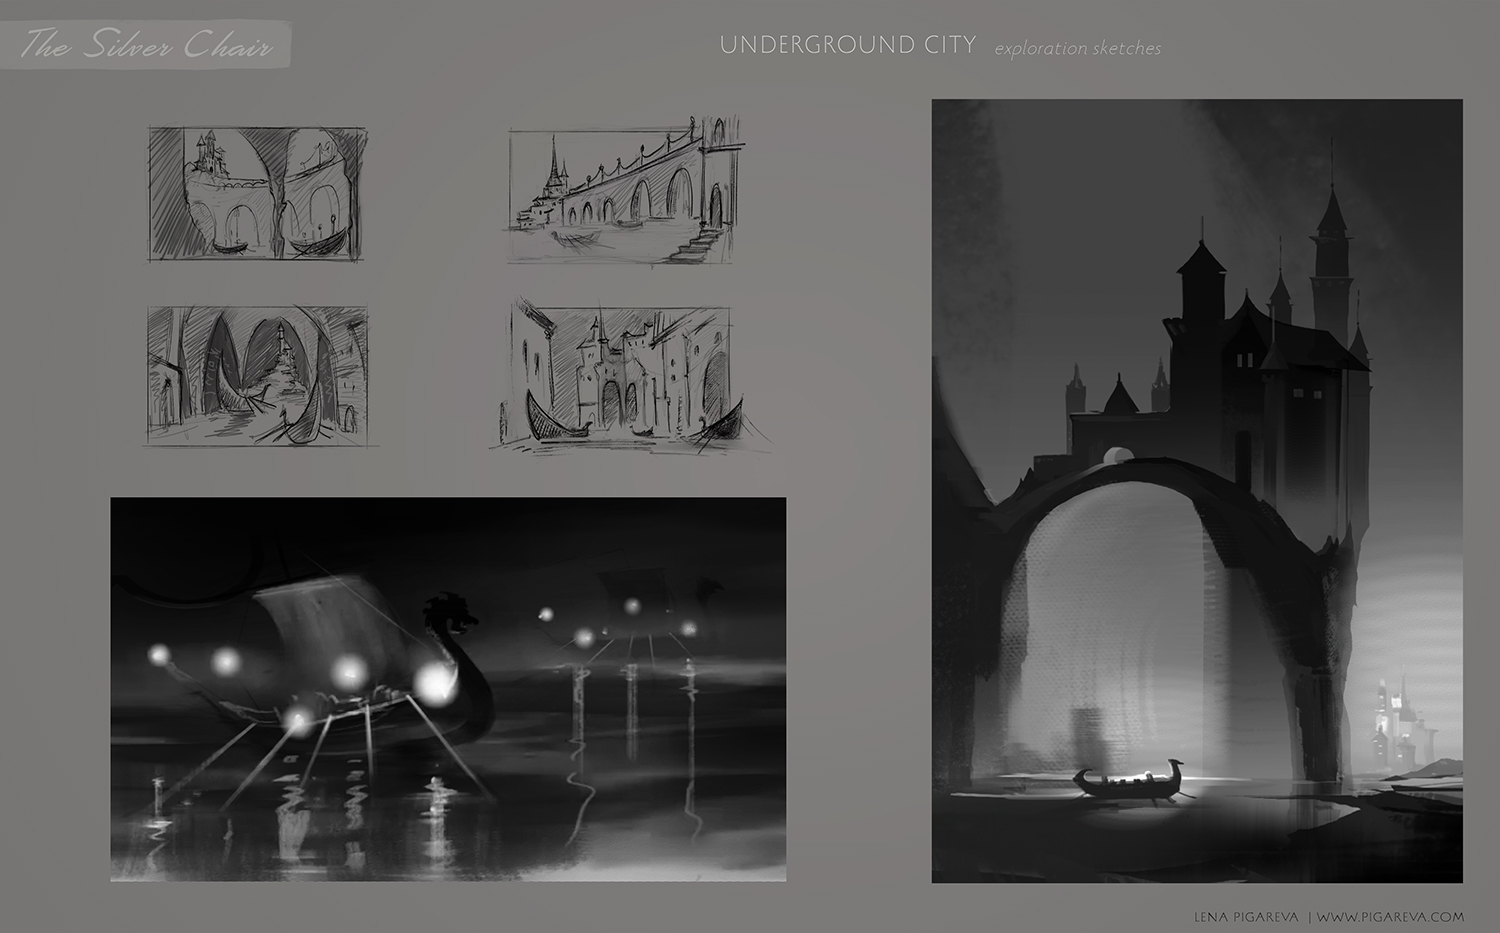 Silver-chair_Undeground-city_exploration-sketches